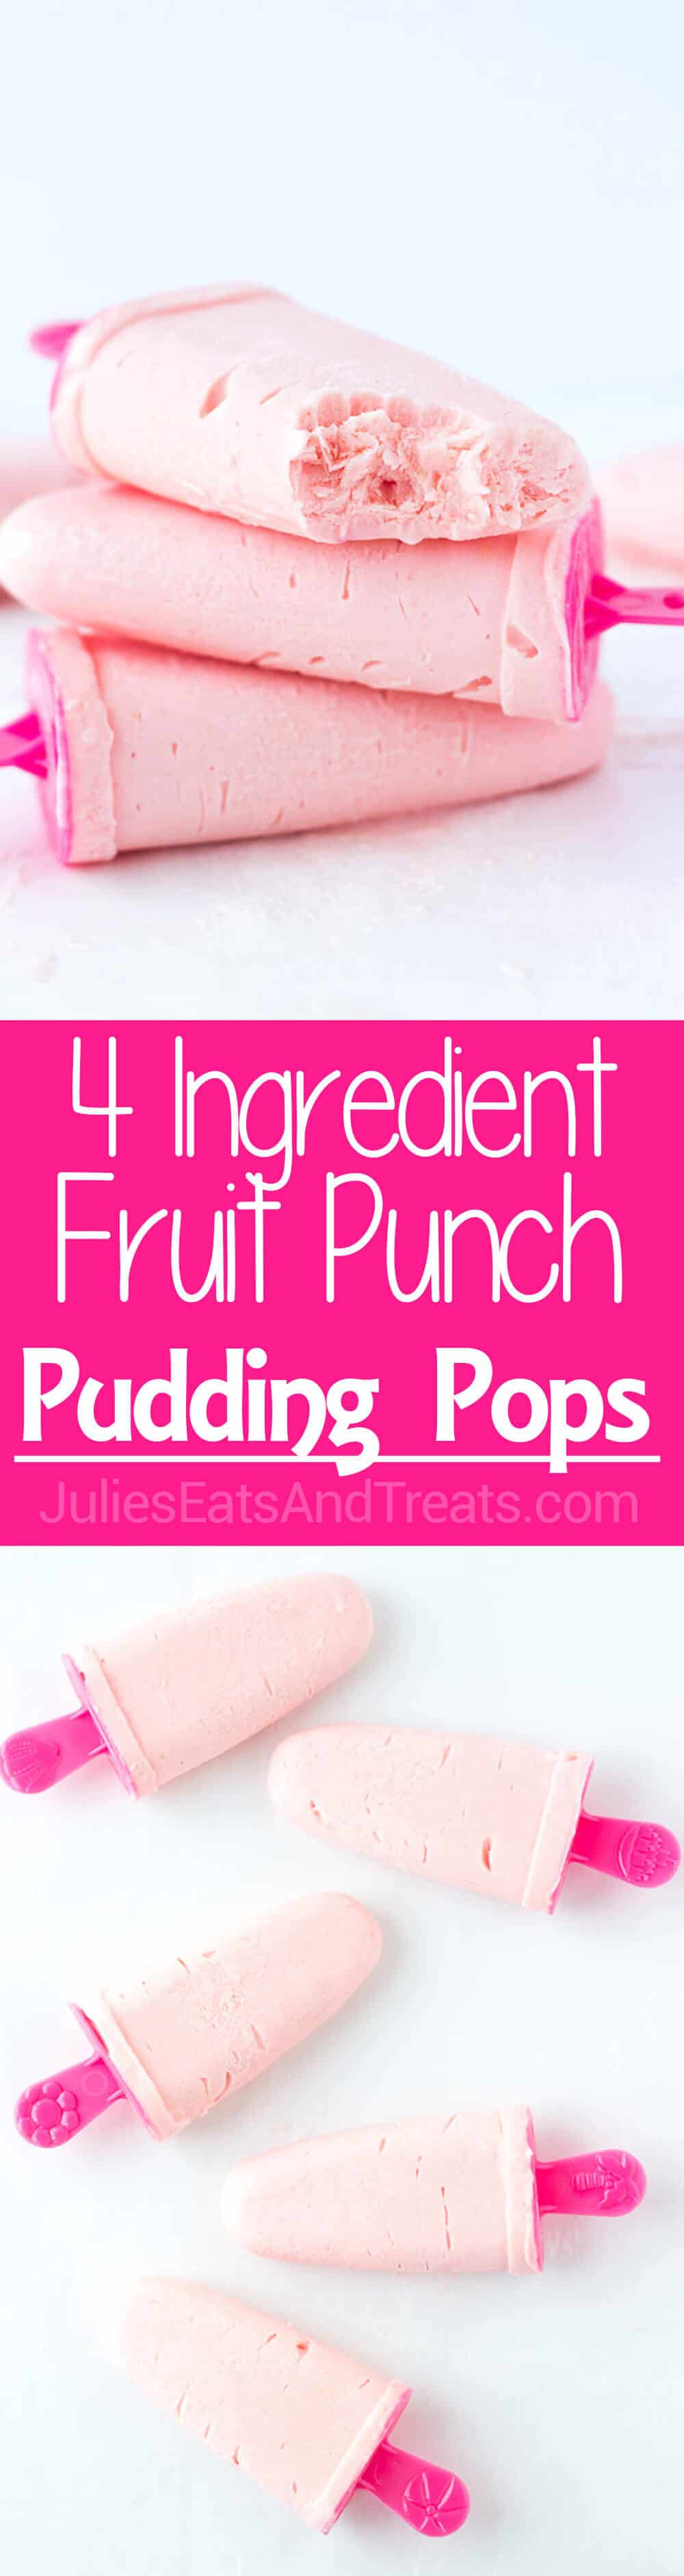 4-Ingredient Fruit Punch Pudding Pops: An easy, fruity, frozen treat that the kids (and adults!) will love this summer! Flavor the pudding pops with any juice flavor you love!